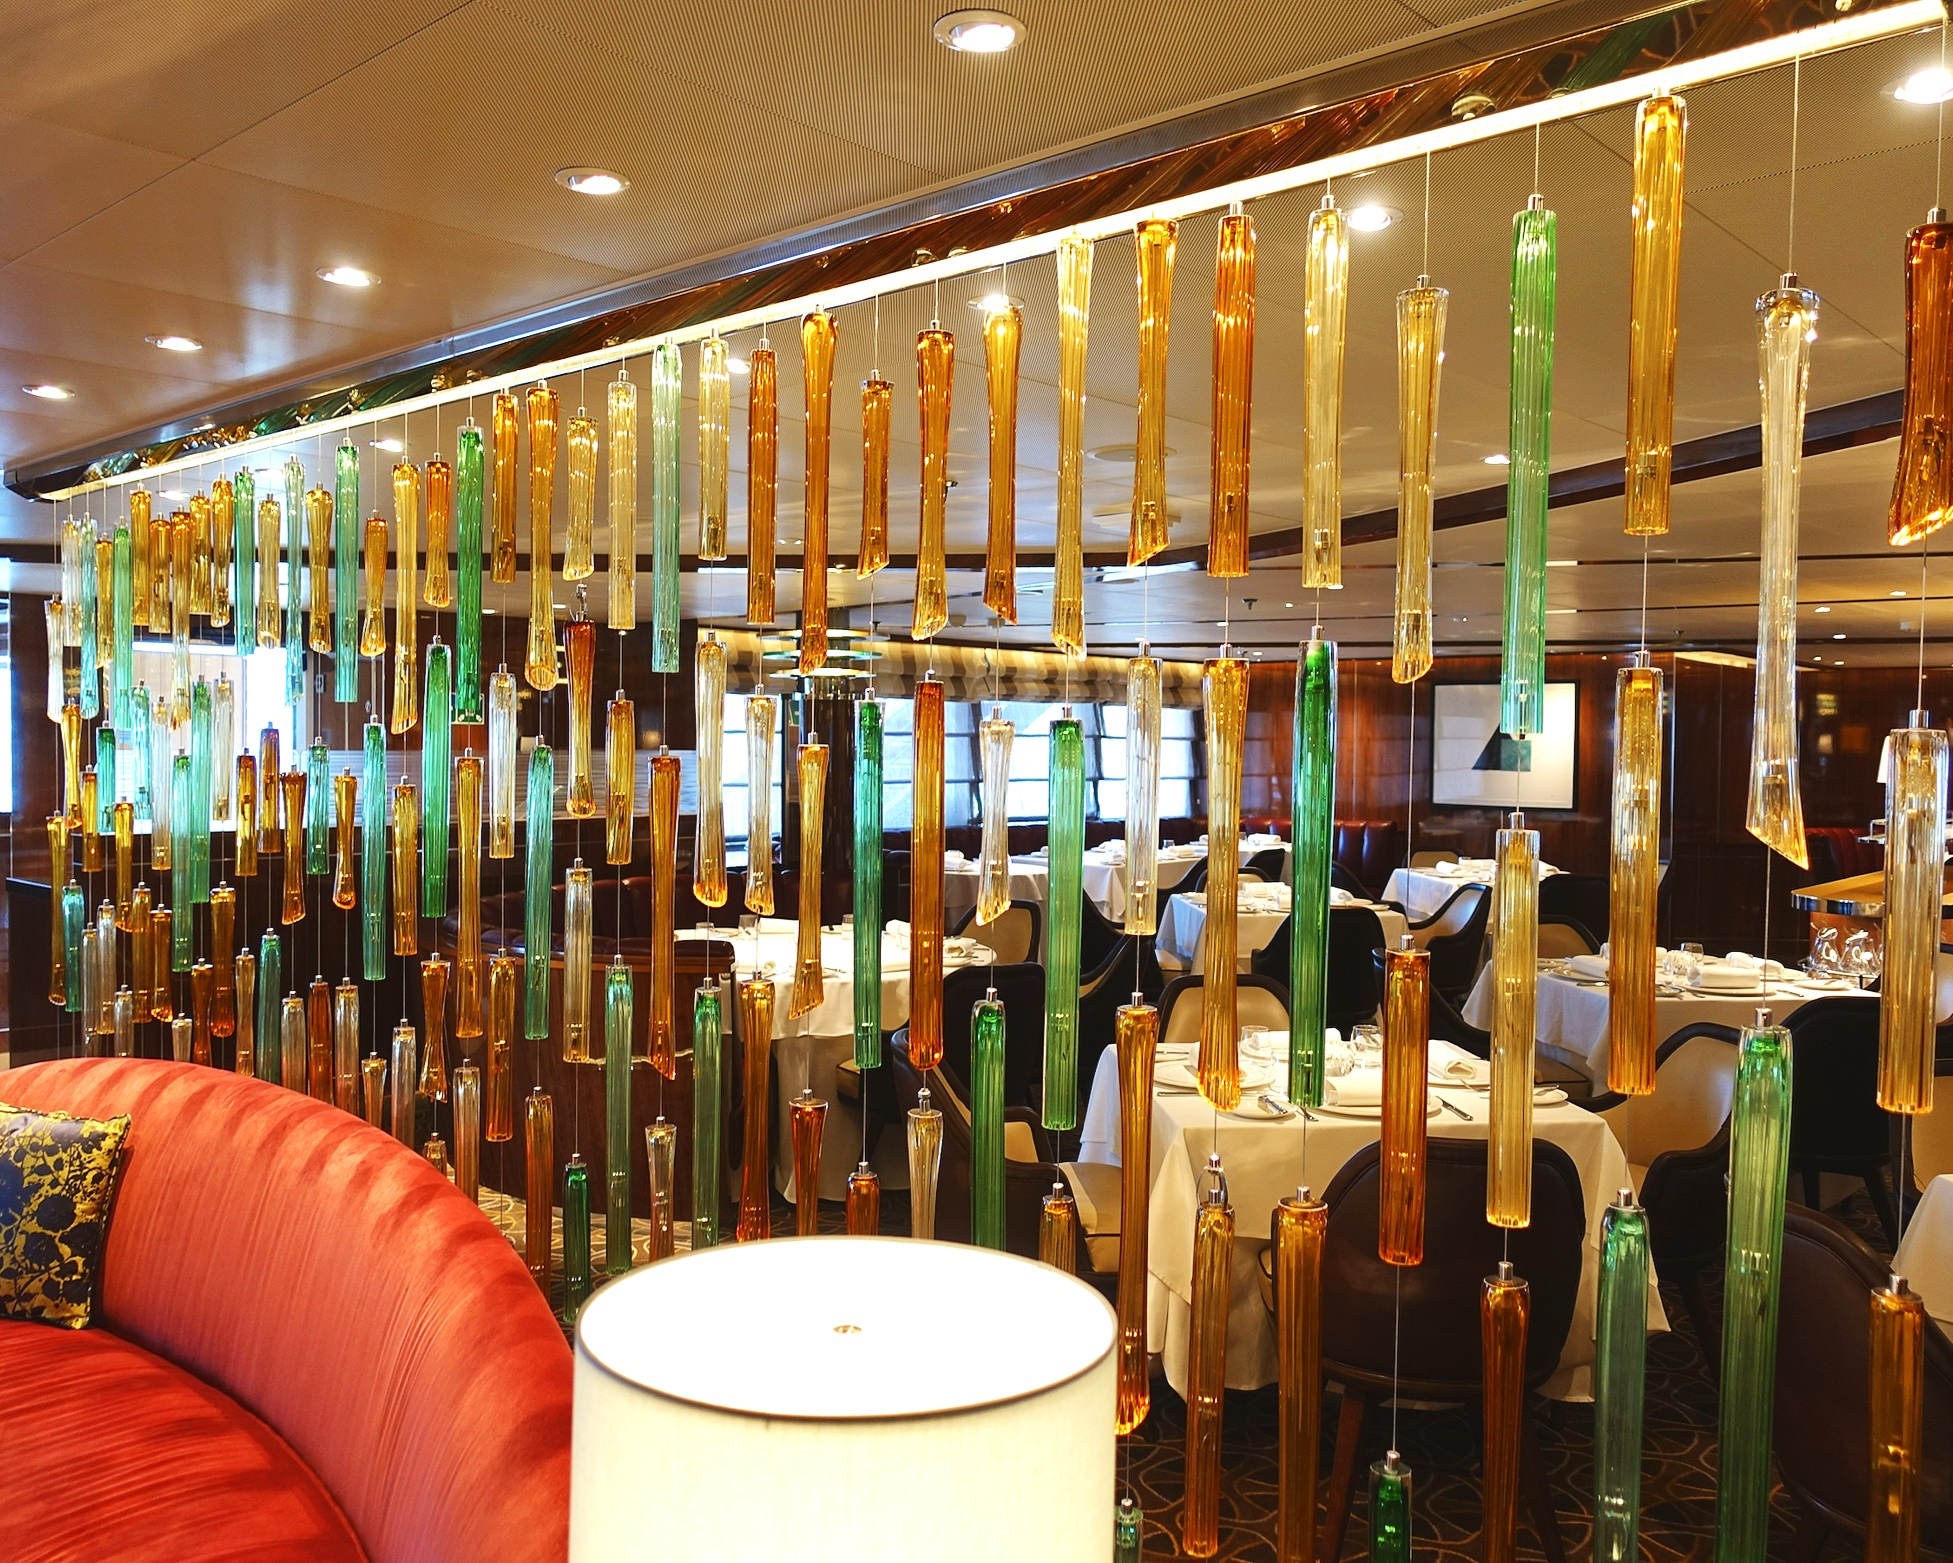 We loved this glass wall dividing the bar from the restaurant area.